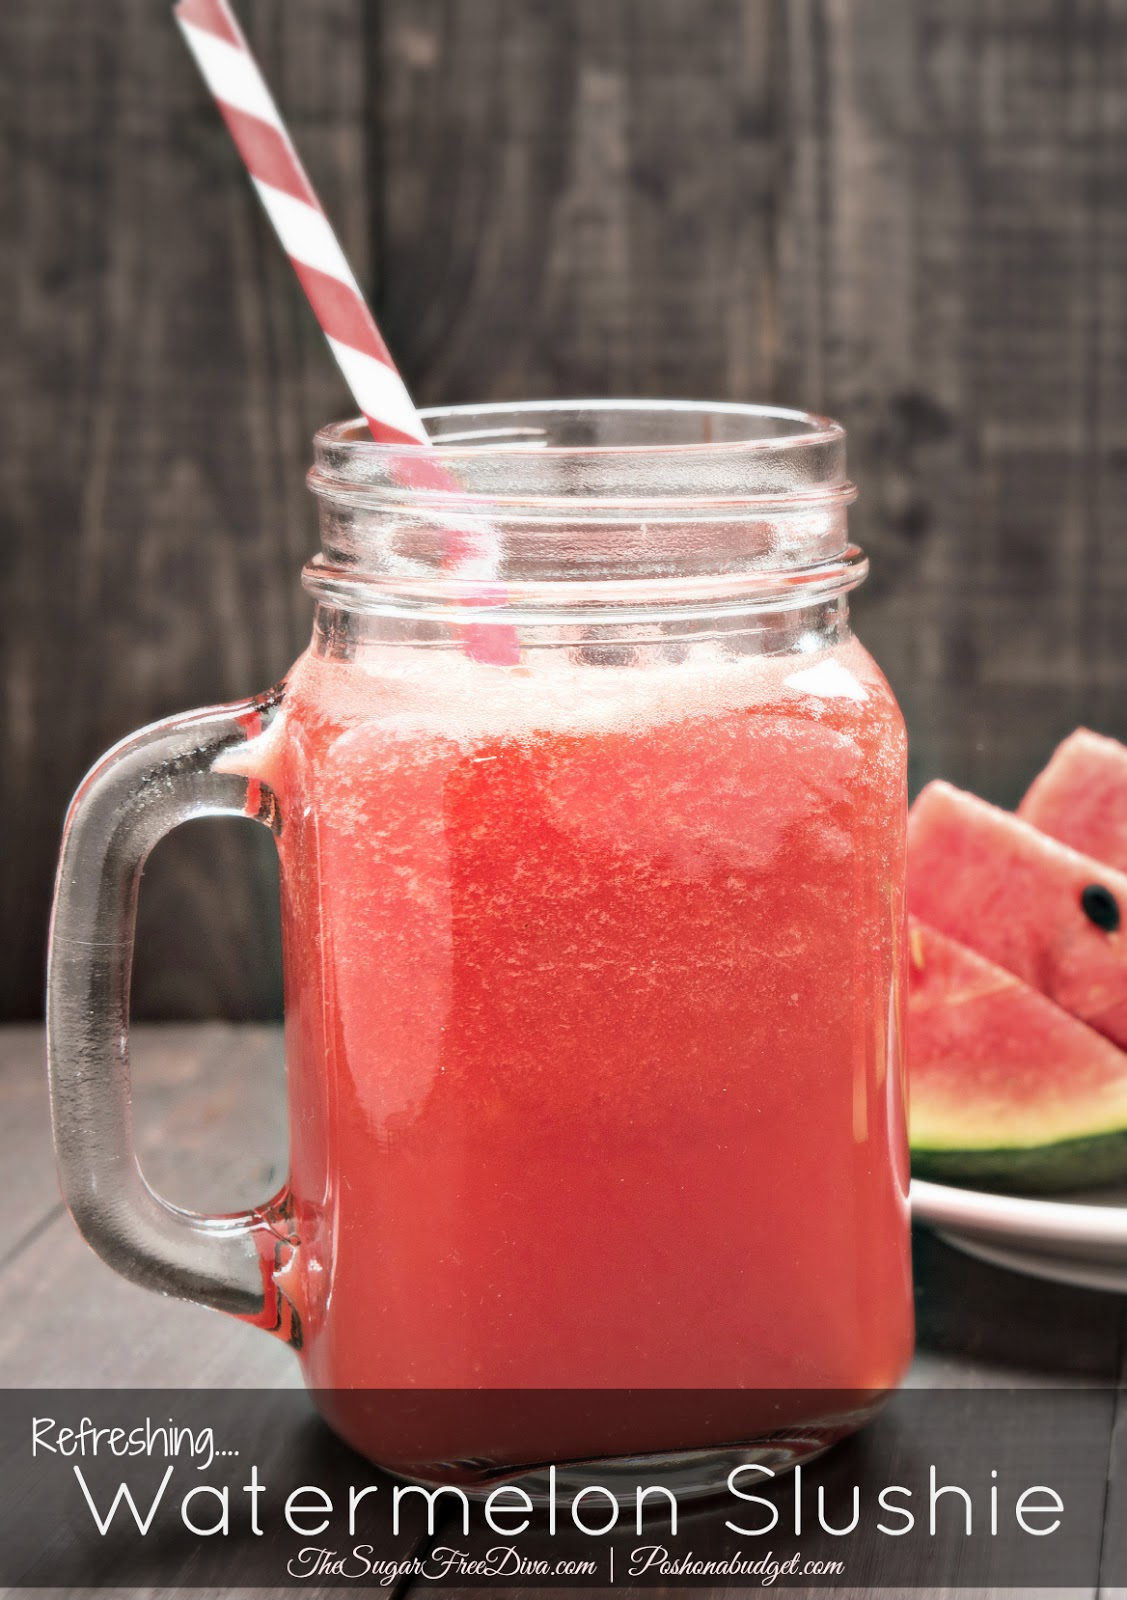 How to Make an Amazing Watermelon Slushie